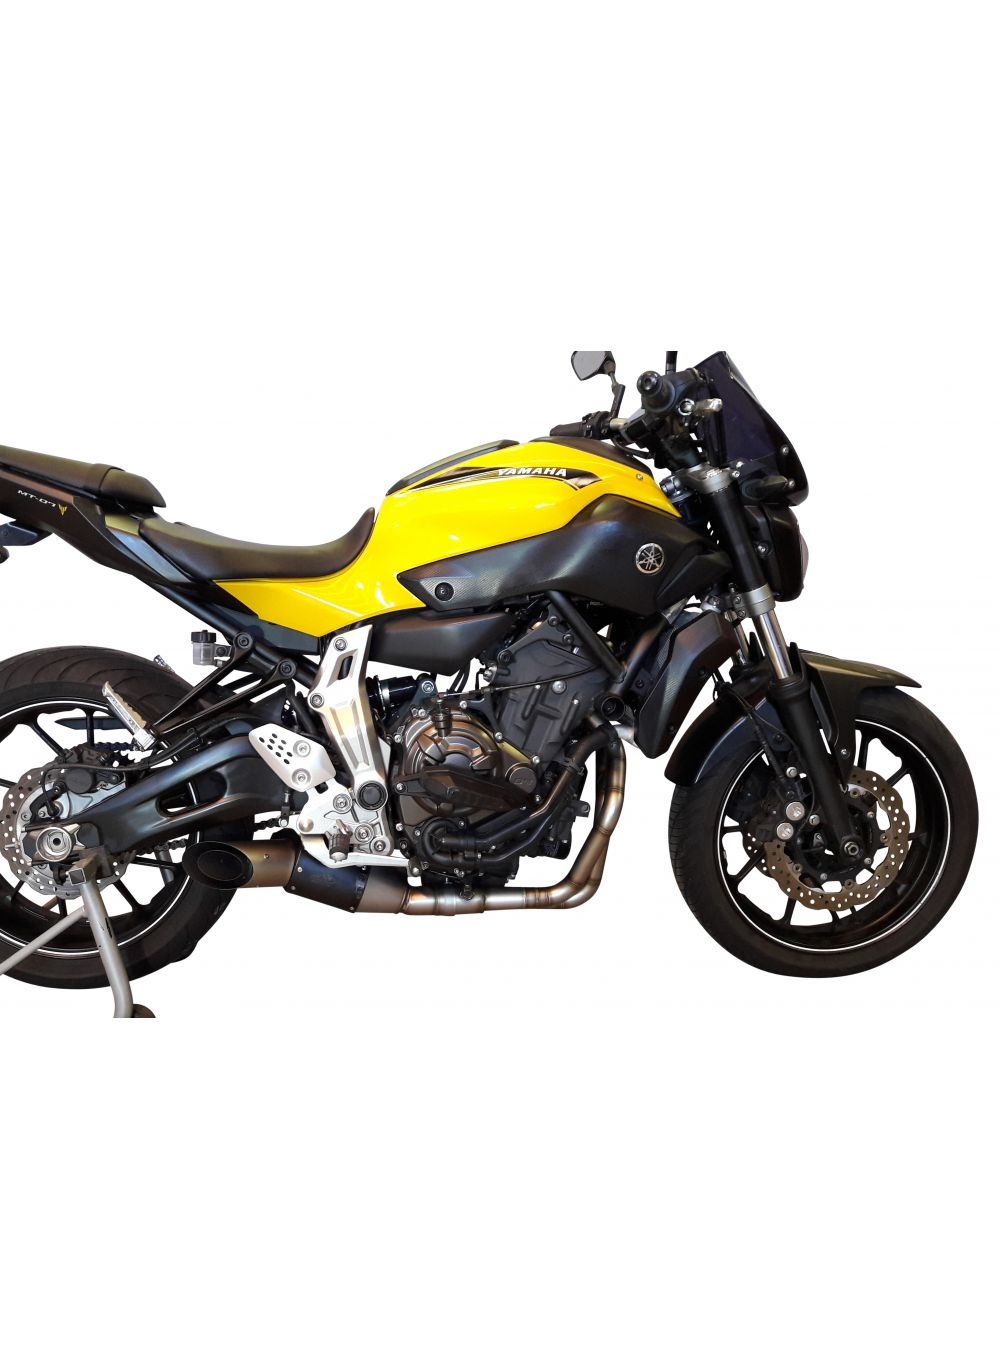 G g gp stealth exhaust system yamaha mt 07 g g shop for Yamaha exhaust systems